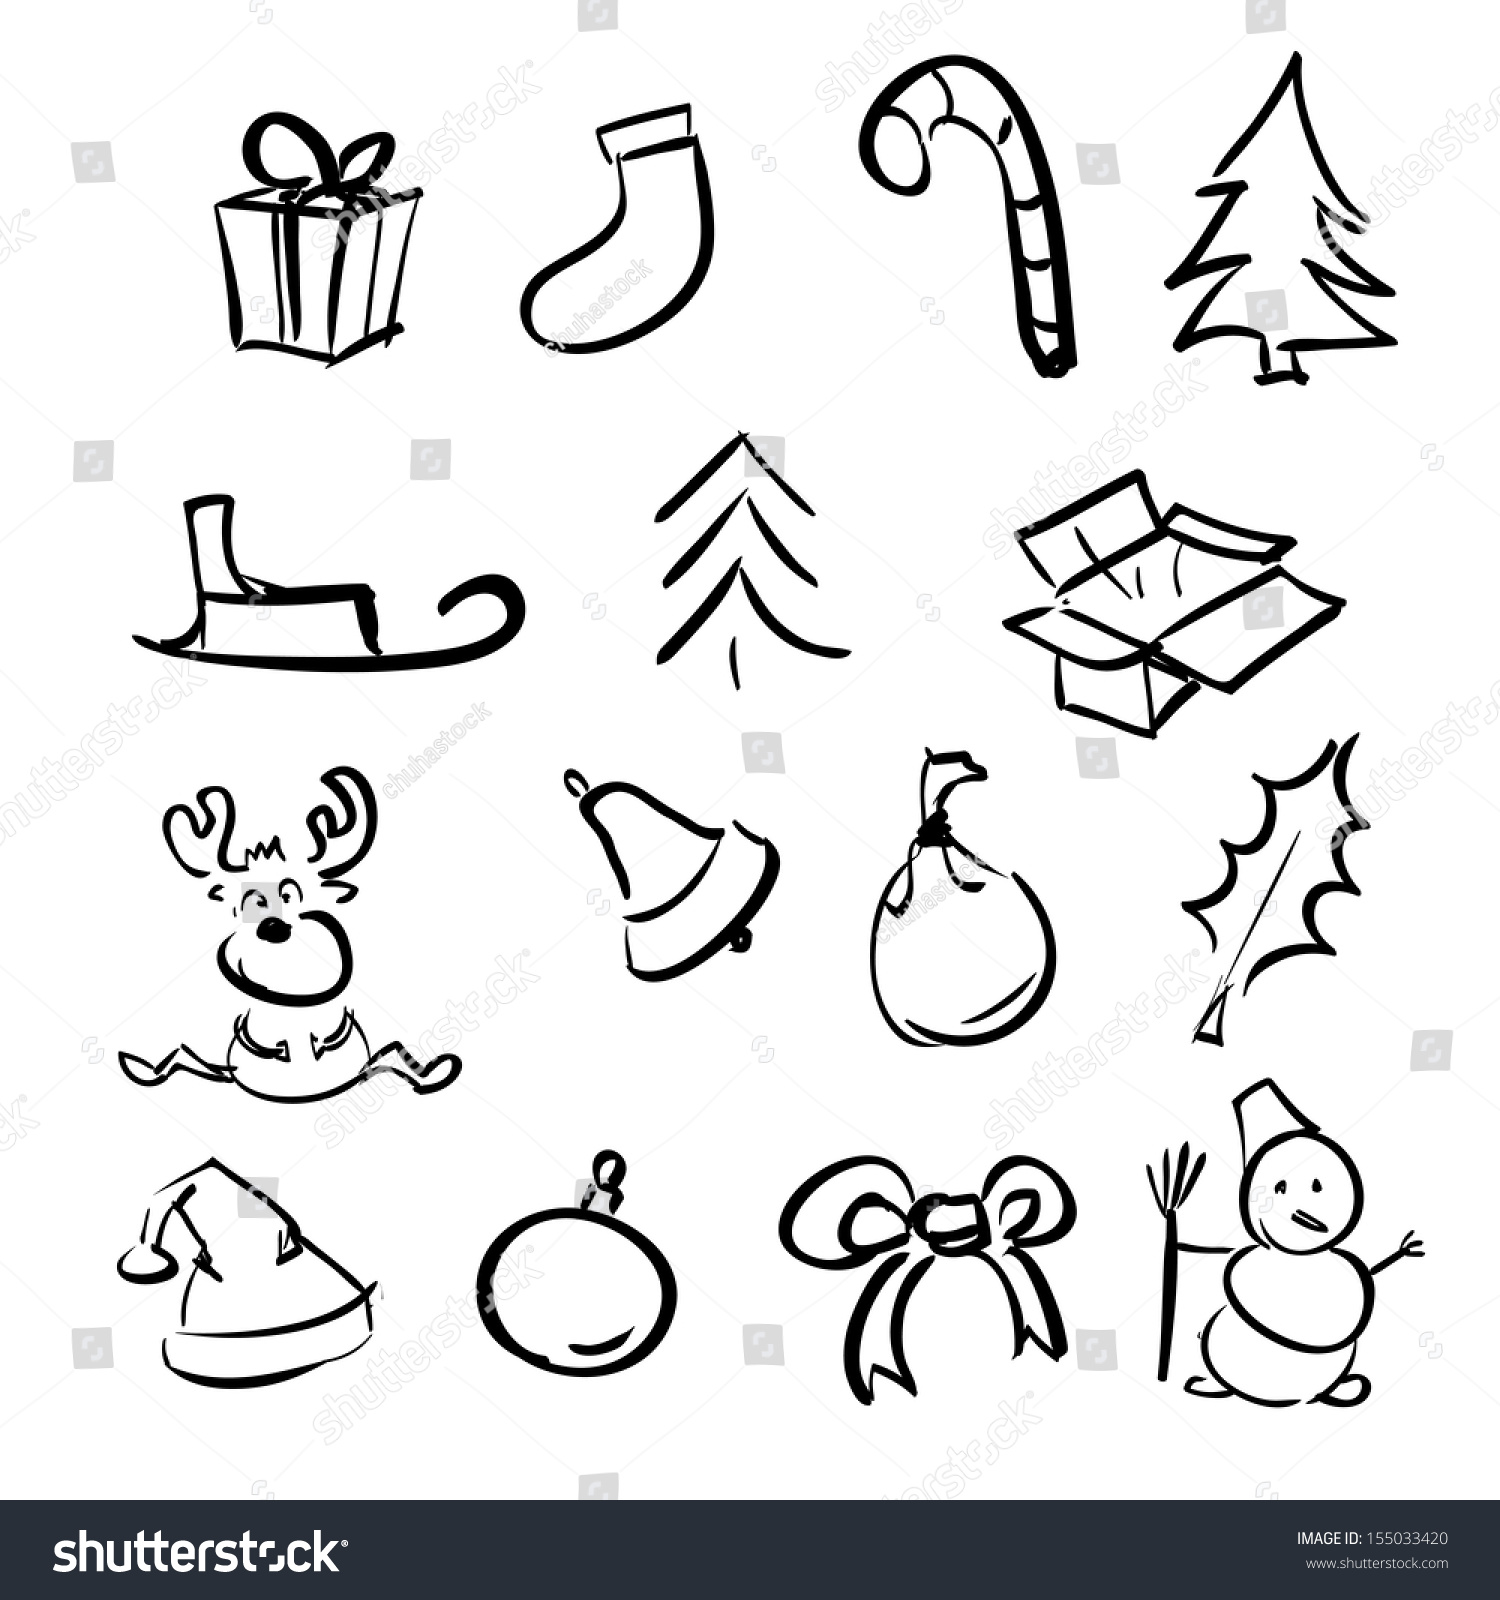 christmas simple objects cartoon sketch collection stock. Black Bedroom Furniture Sets. Home Design Ideas